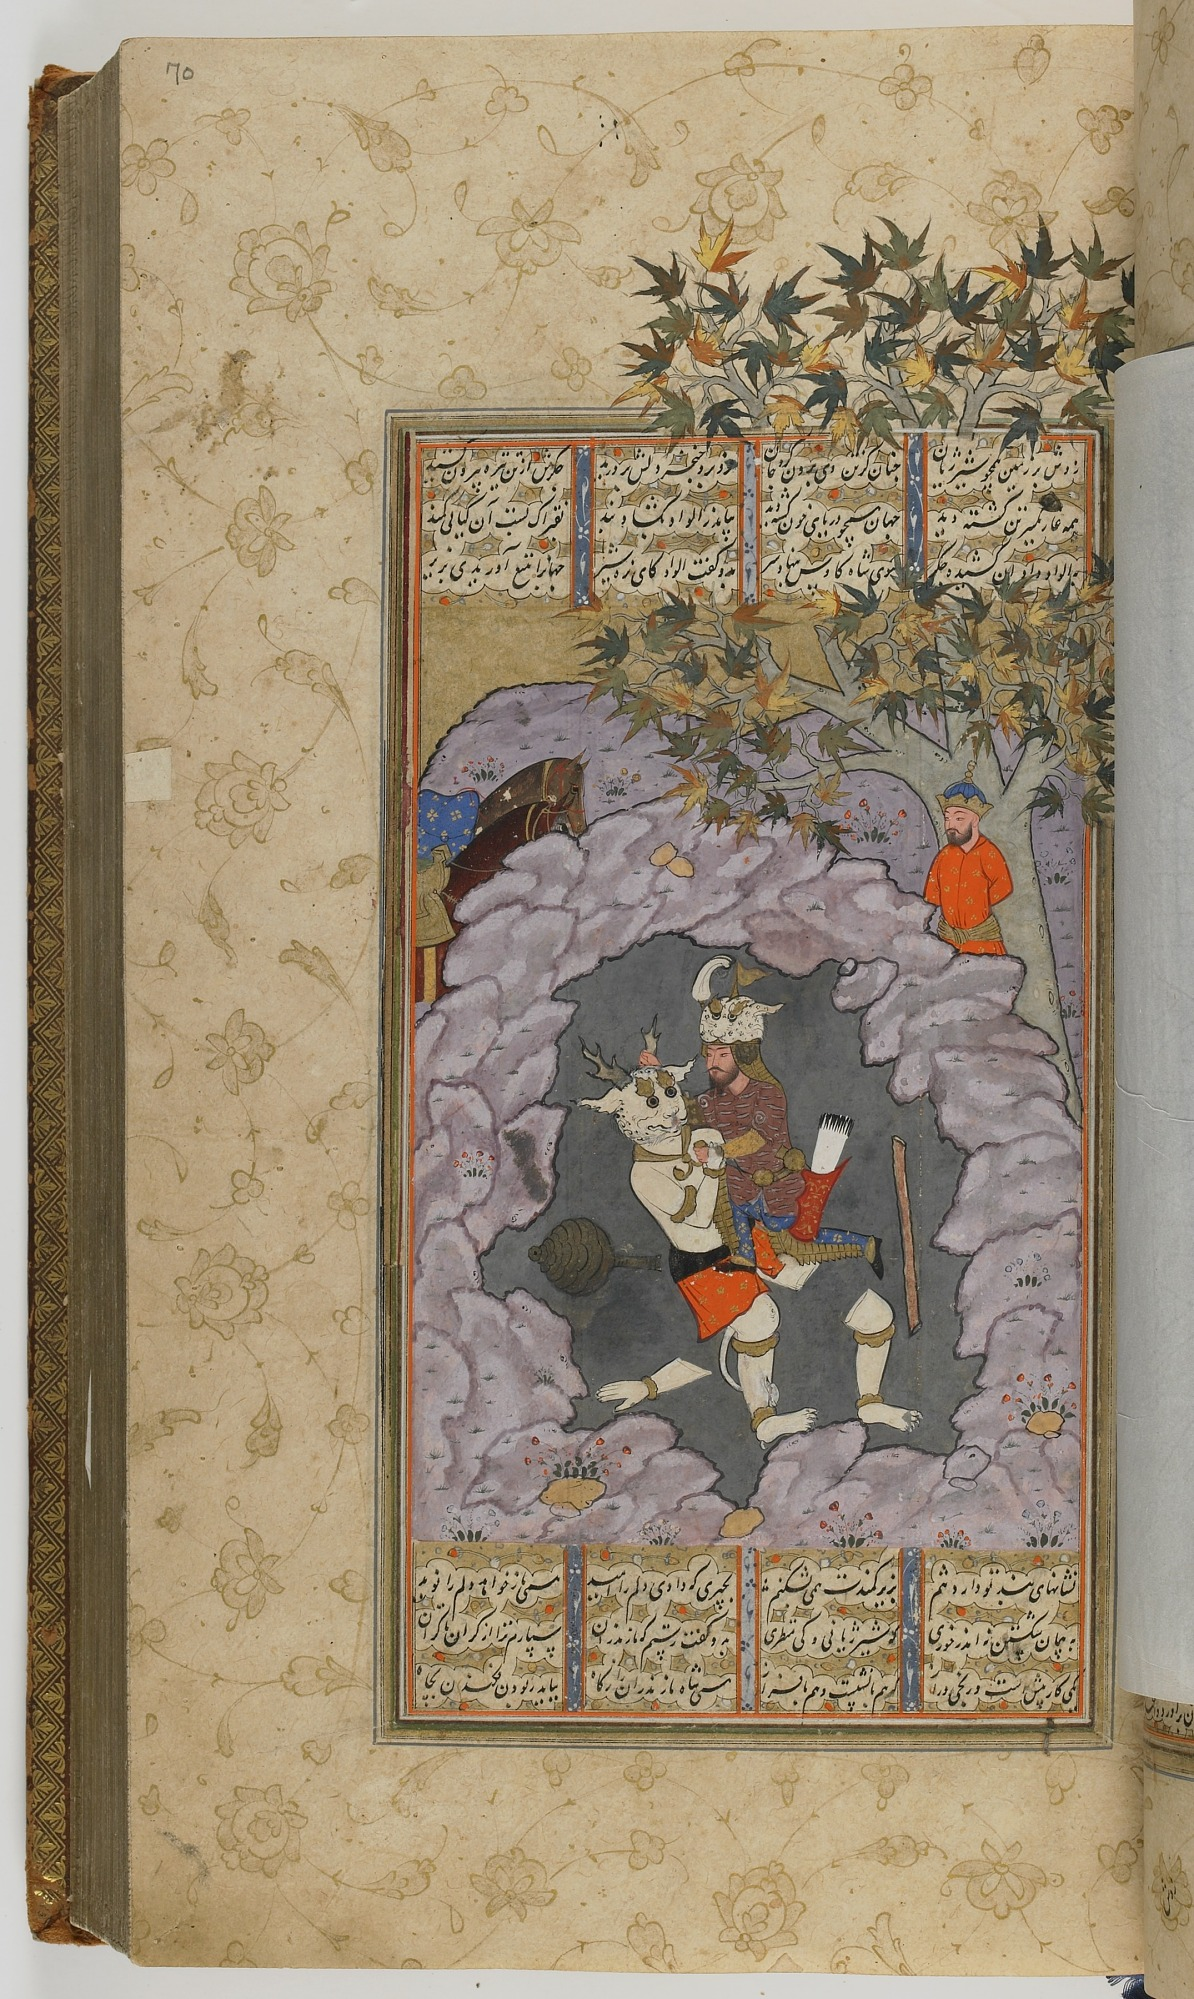 folio 70 recto: The Shahnama (Book of kings) by Firdausi (d. 1020)